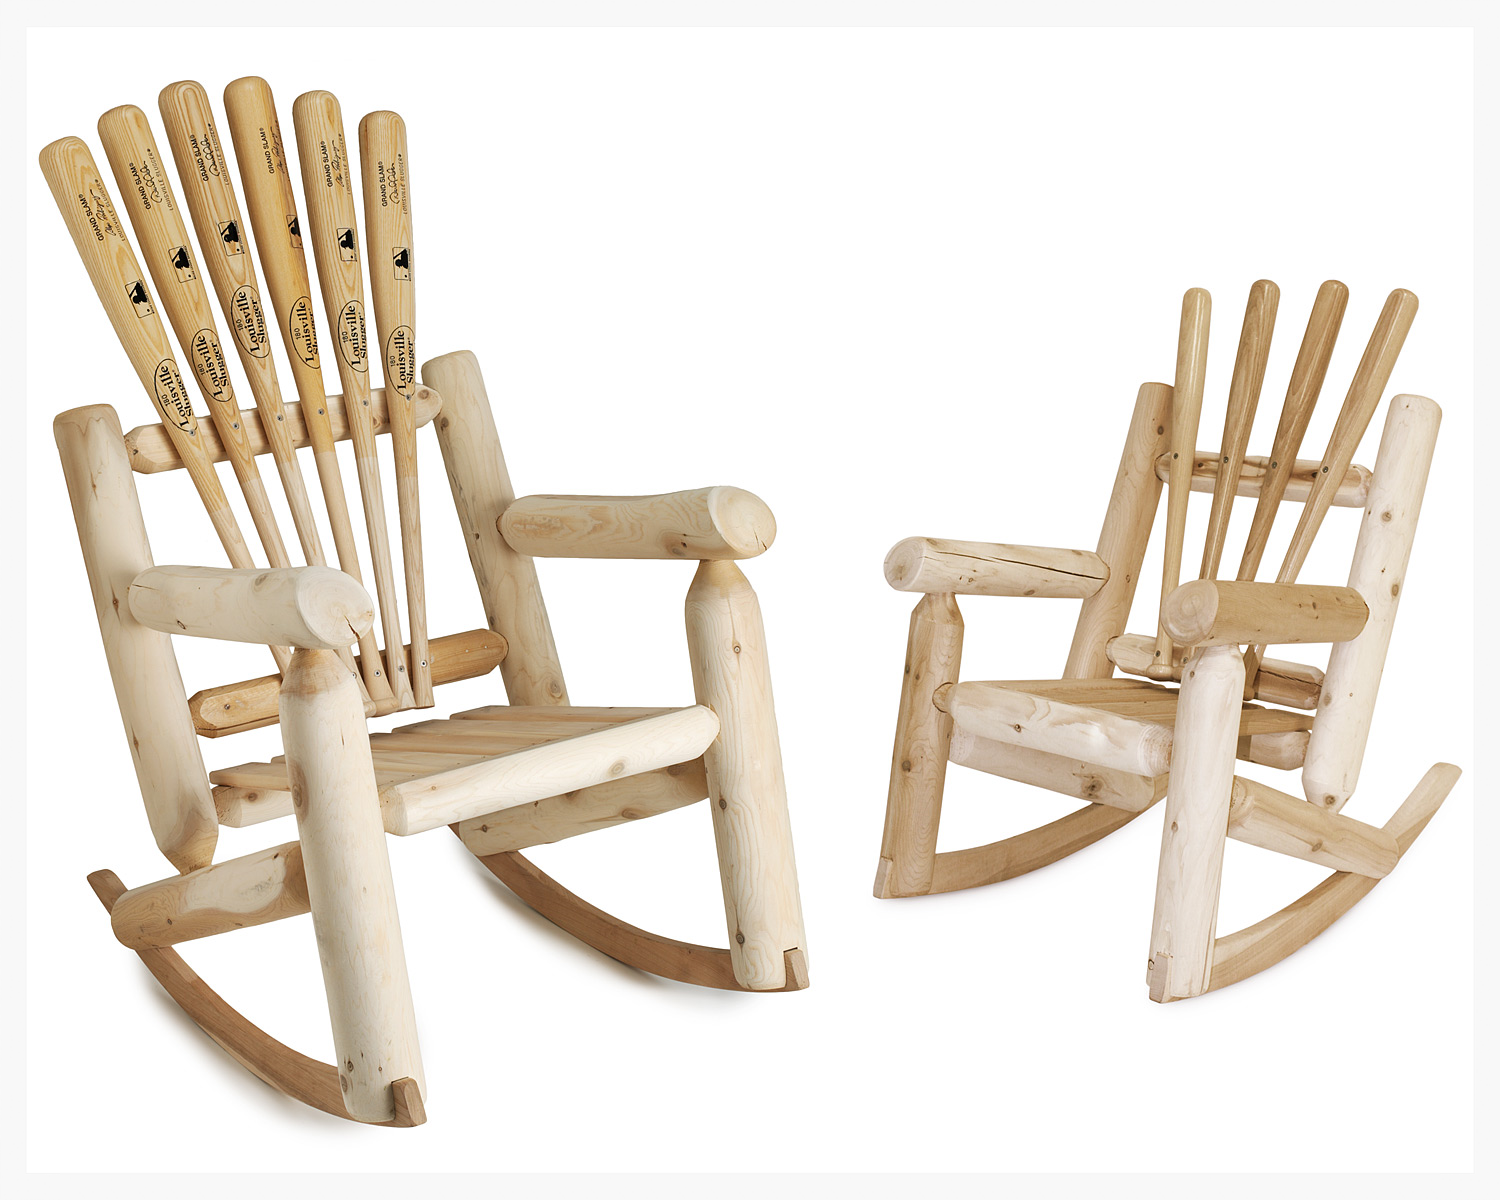 Baseball bat rocking chair! Now this is cute, but it looks mighty uncomfortable. Wouldn't do any good if he couldn't actually relax in it!